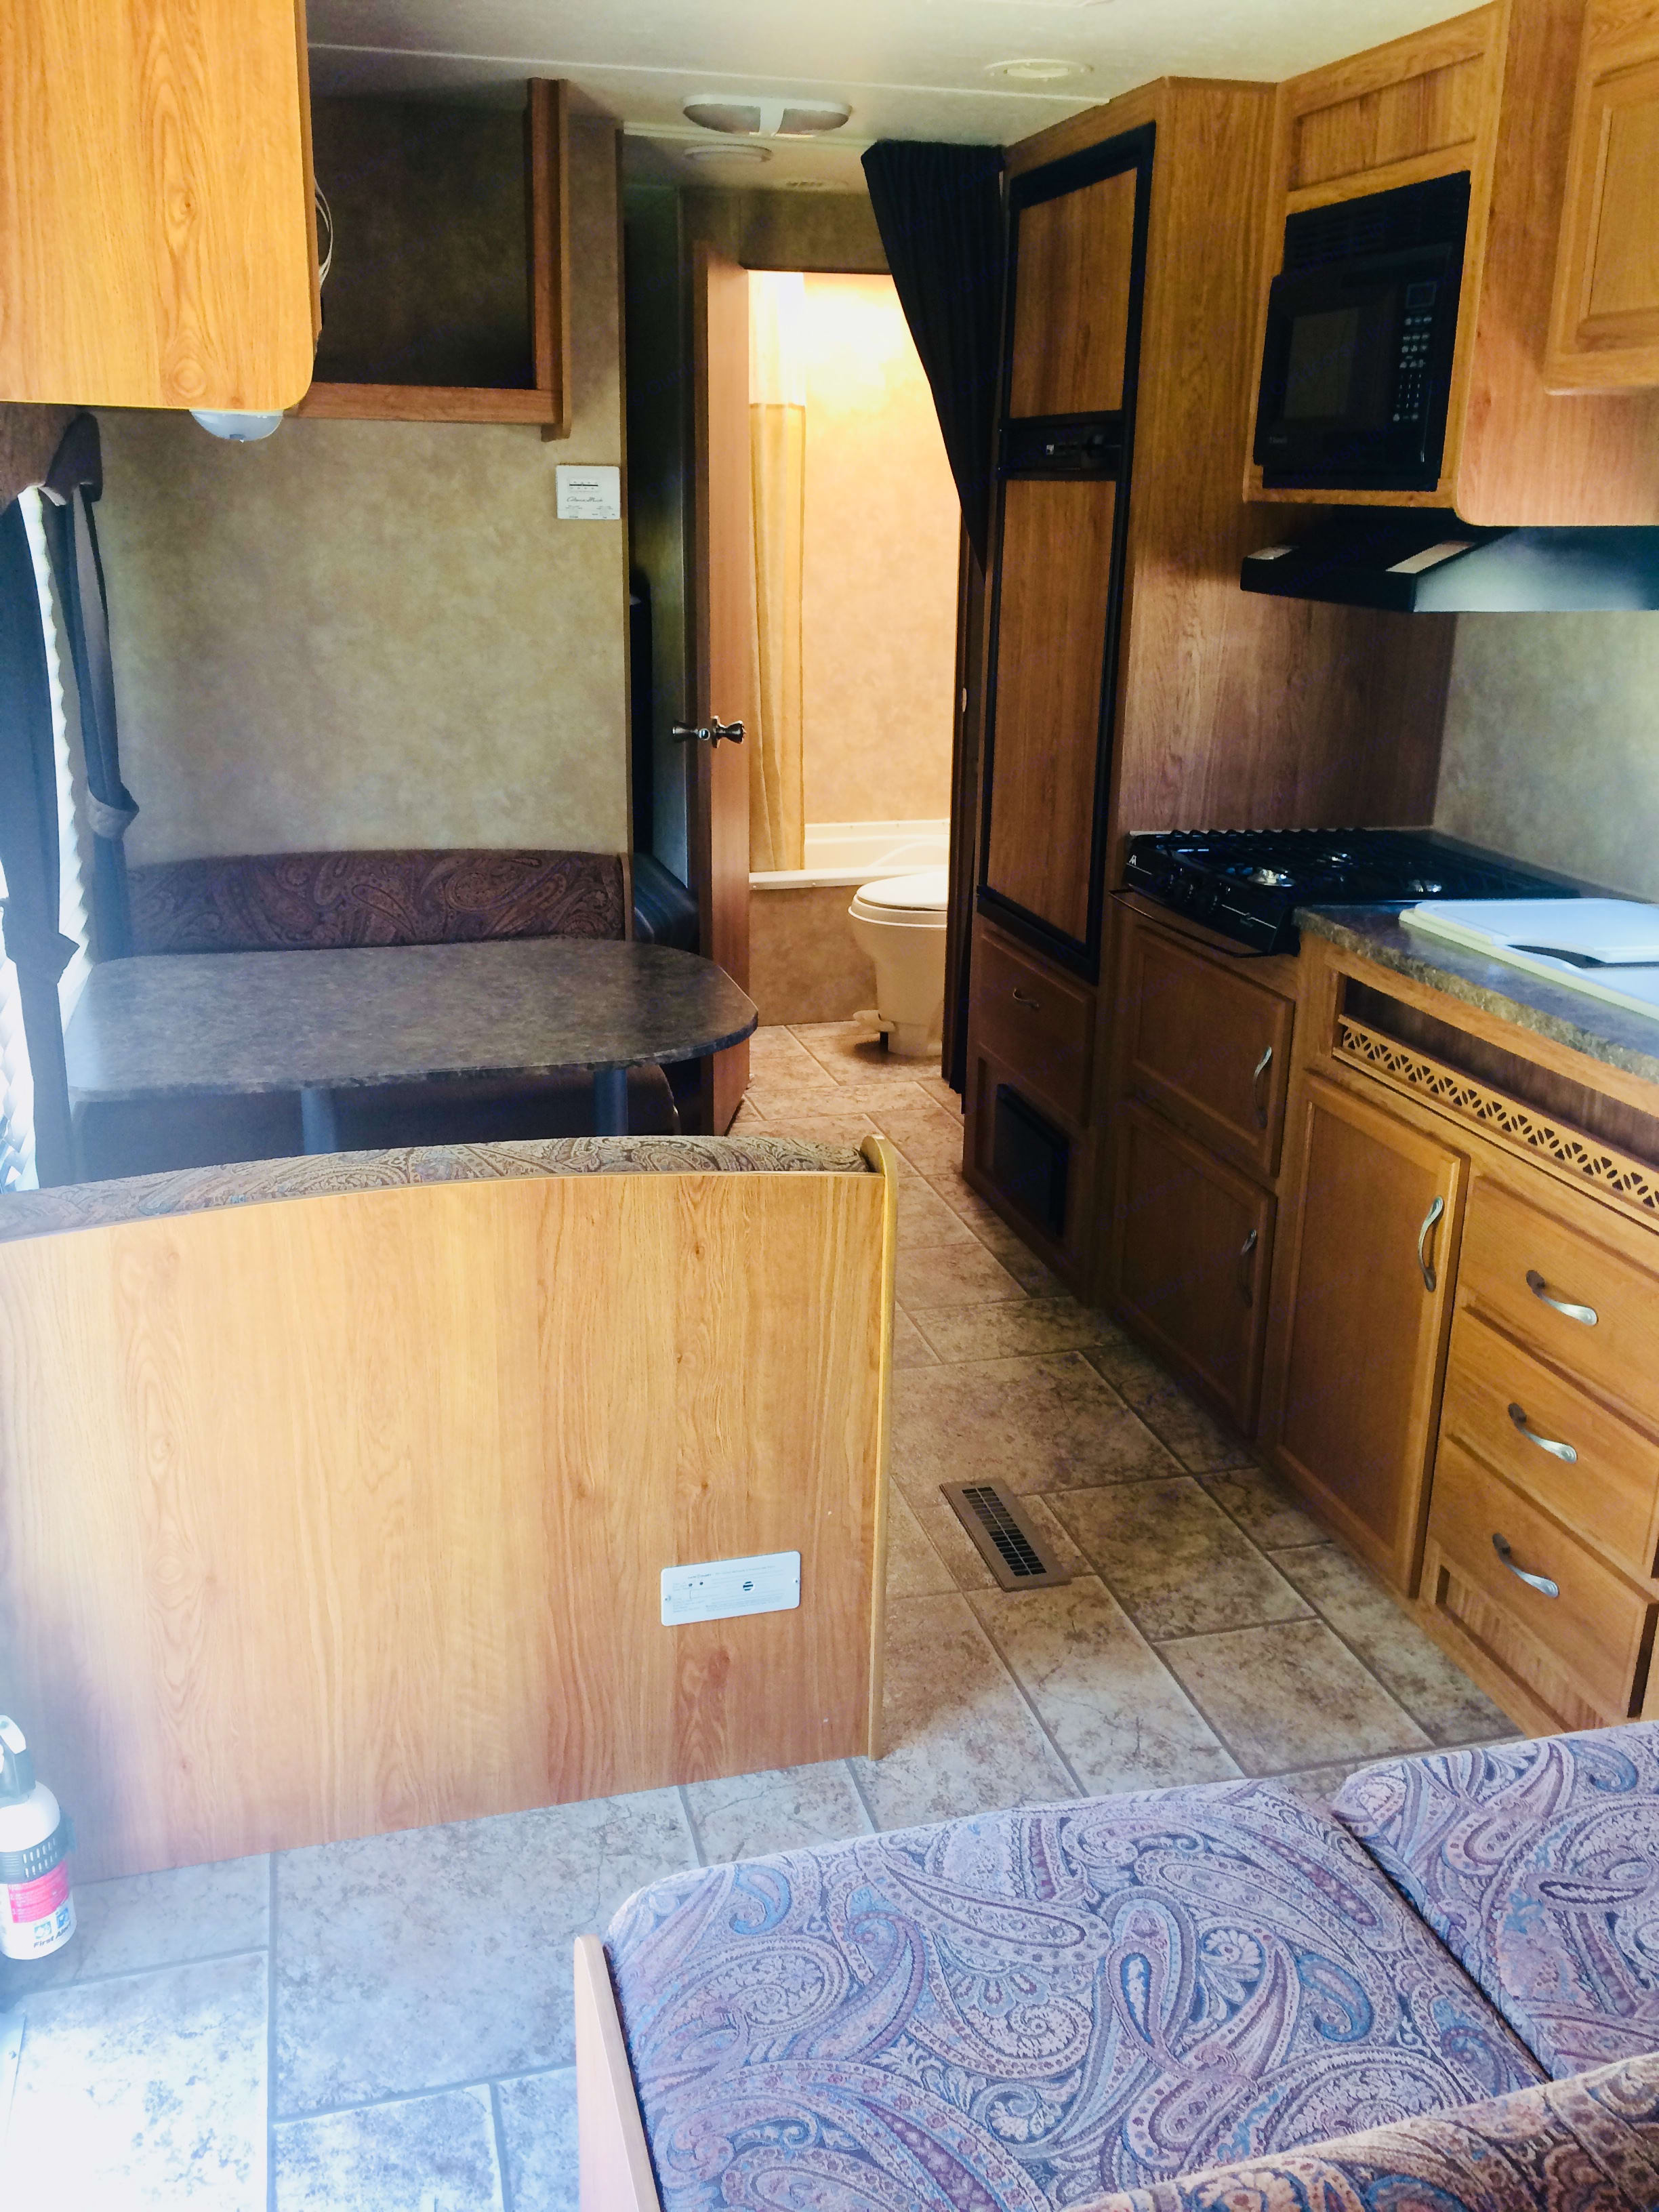 Dining table folds down into bed. Large kitchen area.. Jayco Jay Flight 26BH 2010